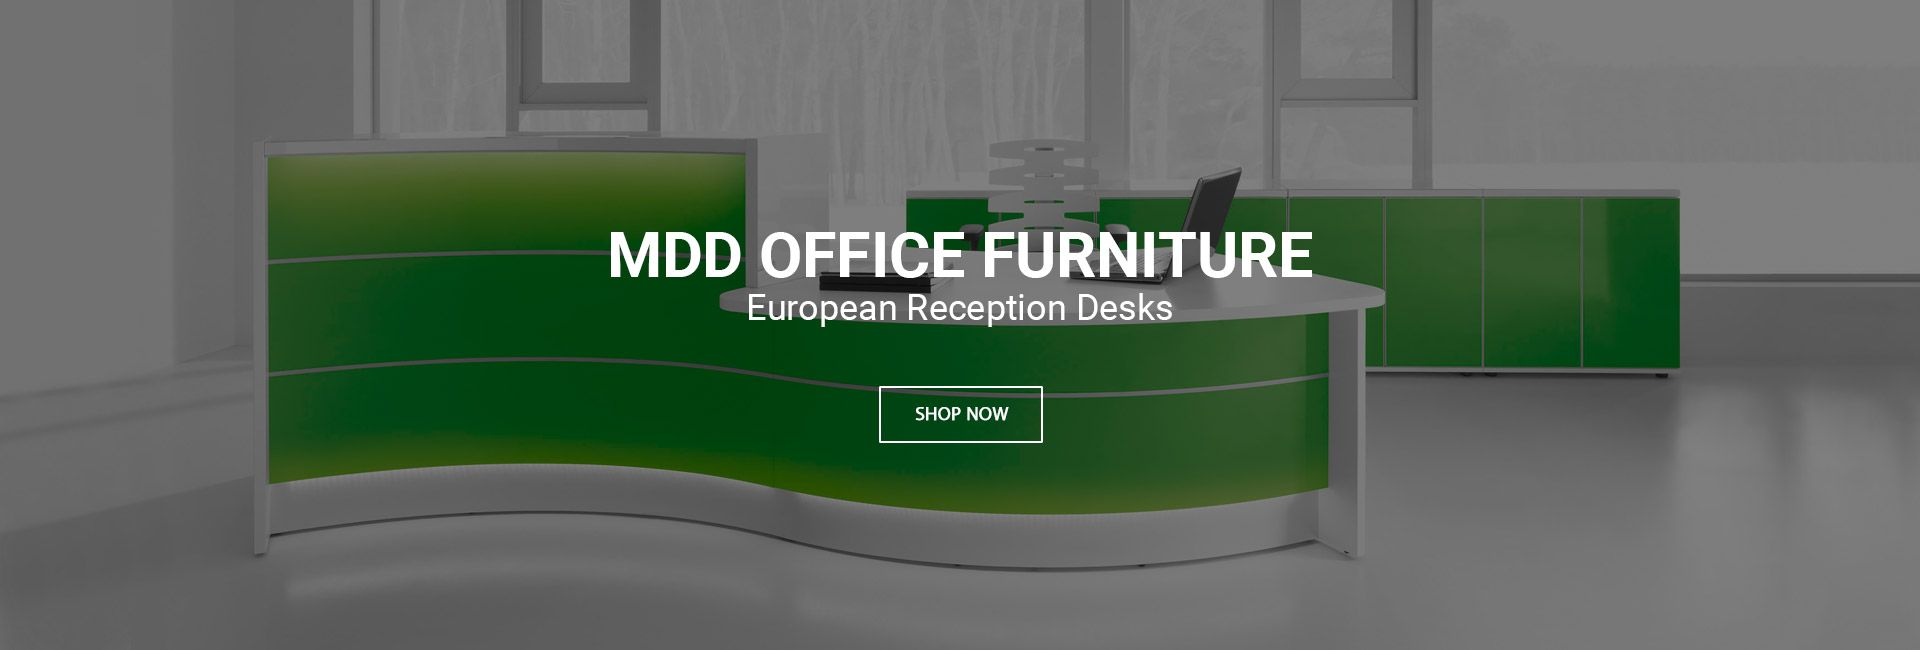 MDD Office Furniture